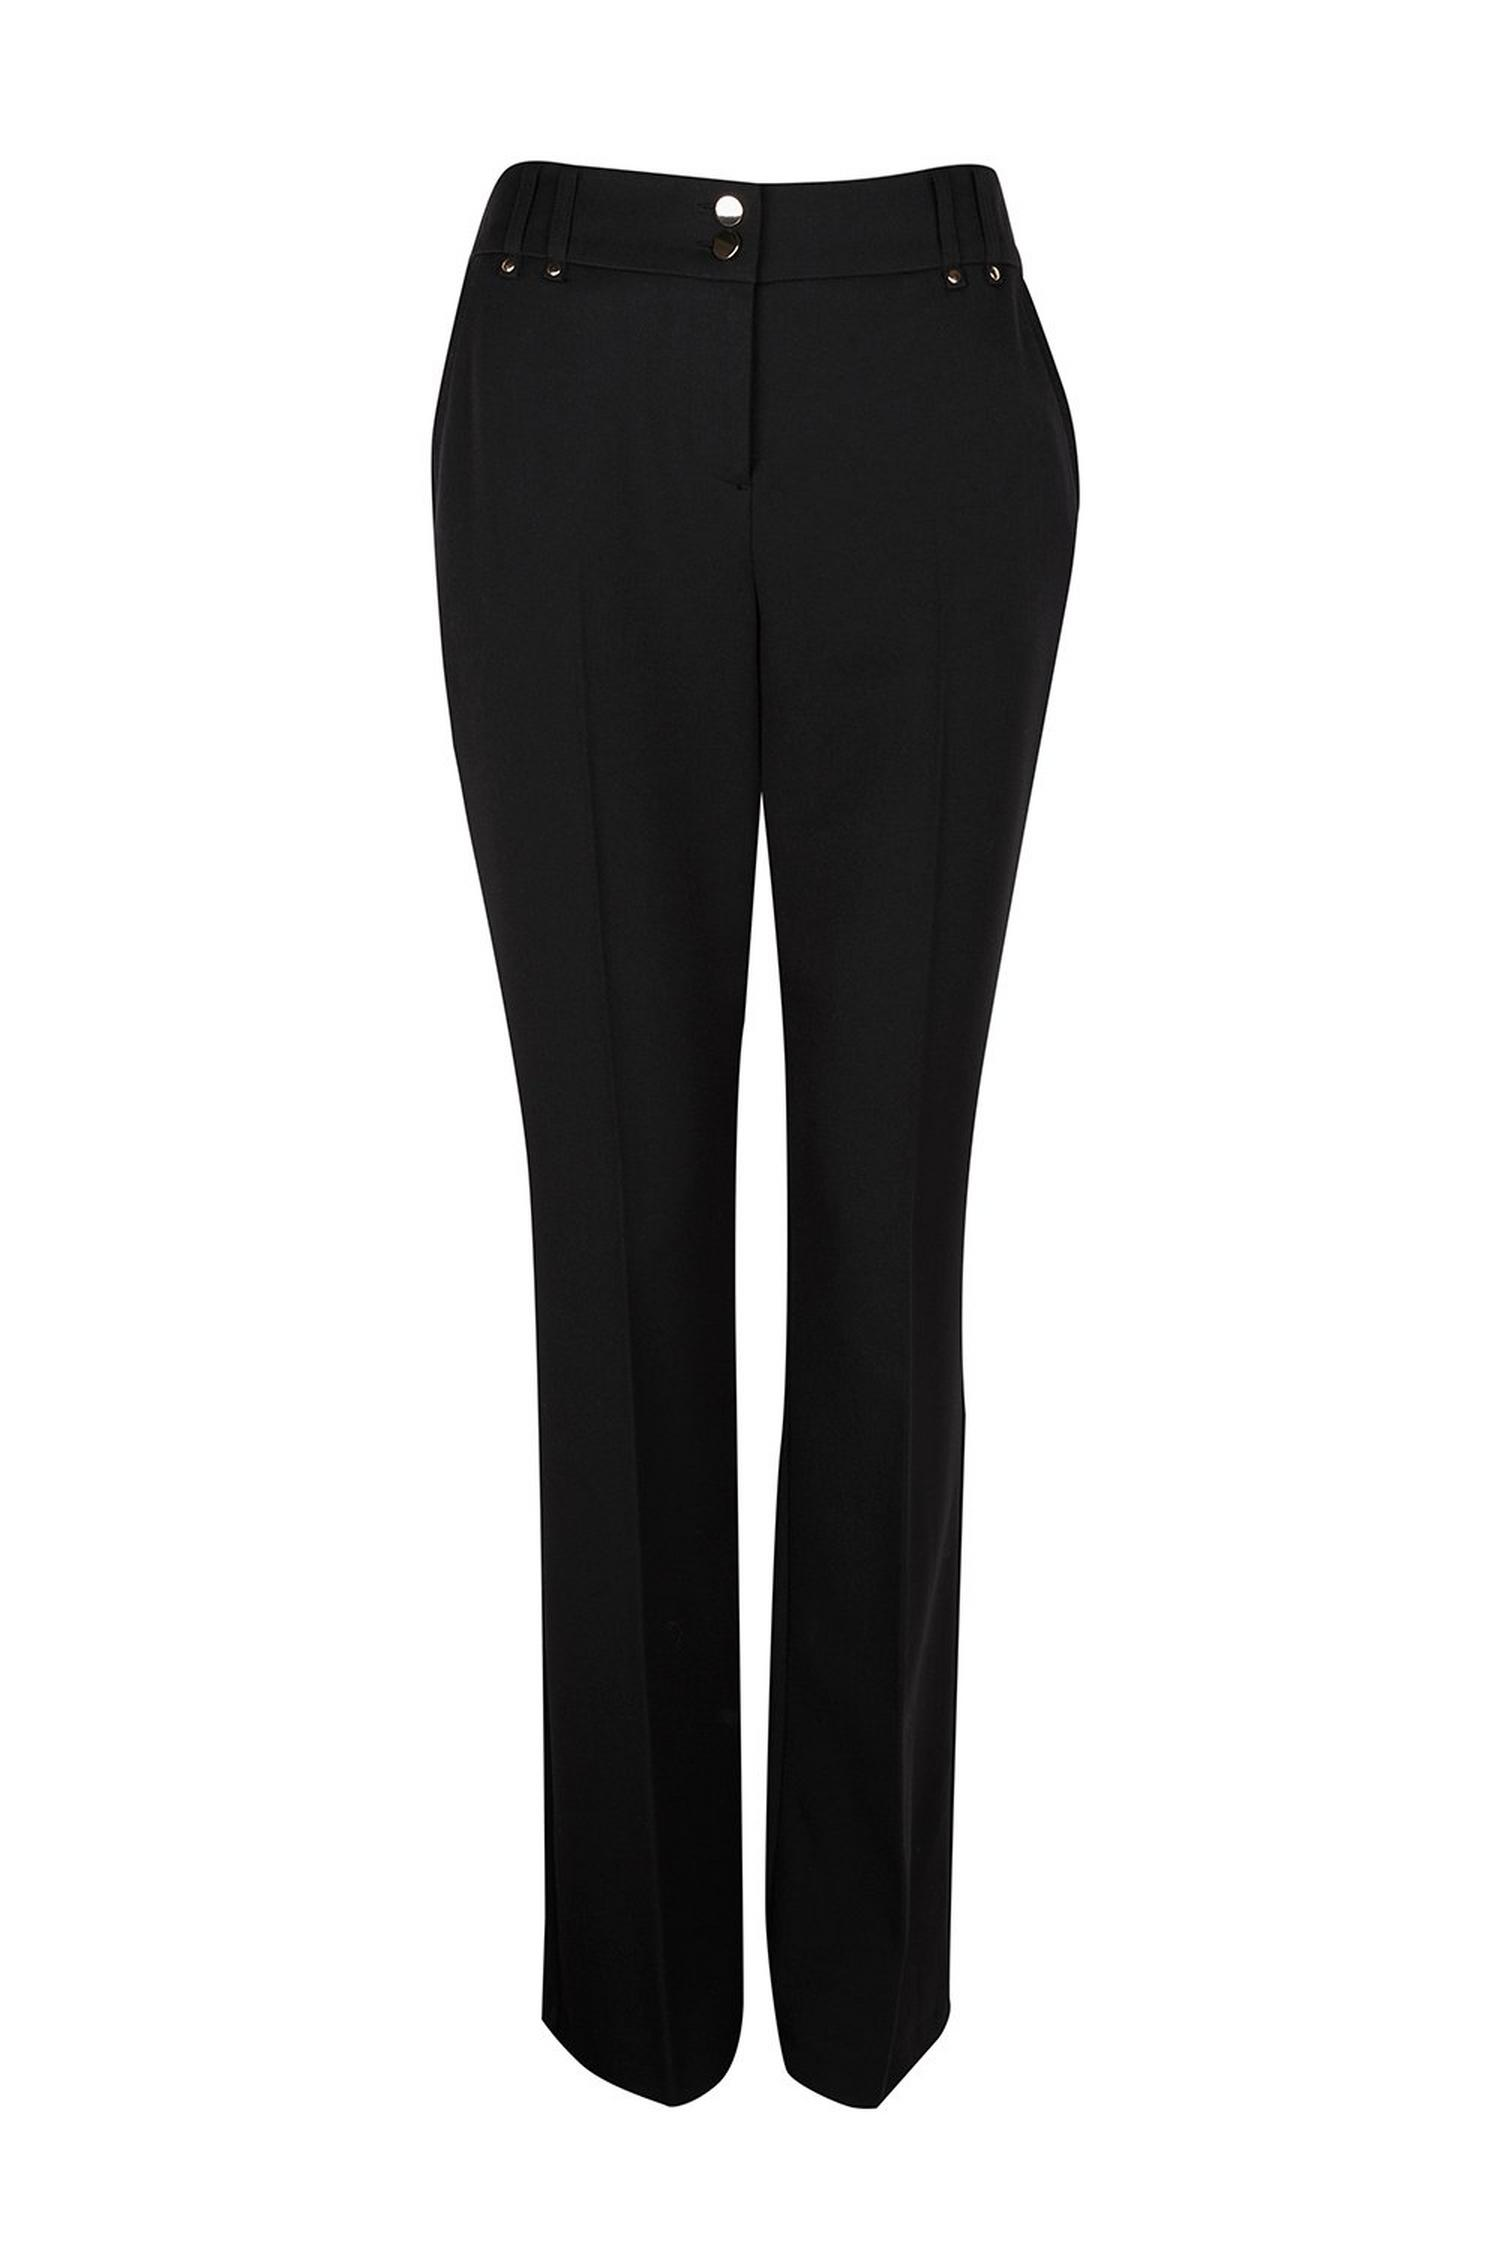 105 Black Bootcut Trousers image number 1